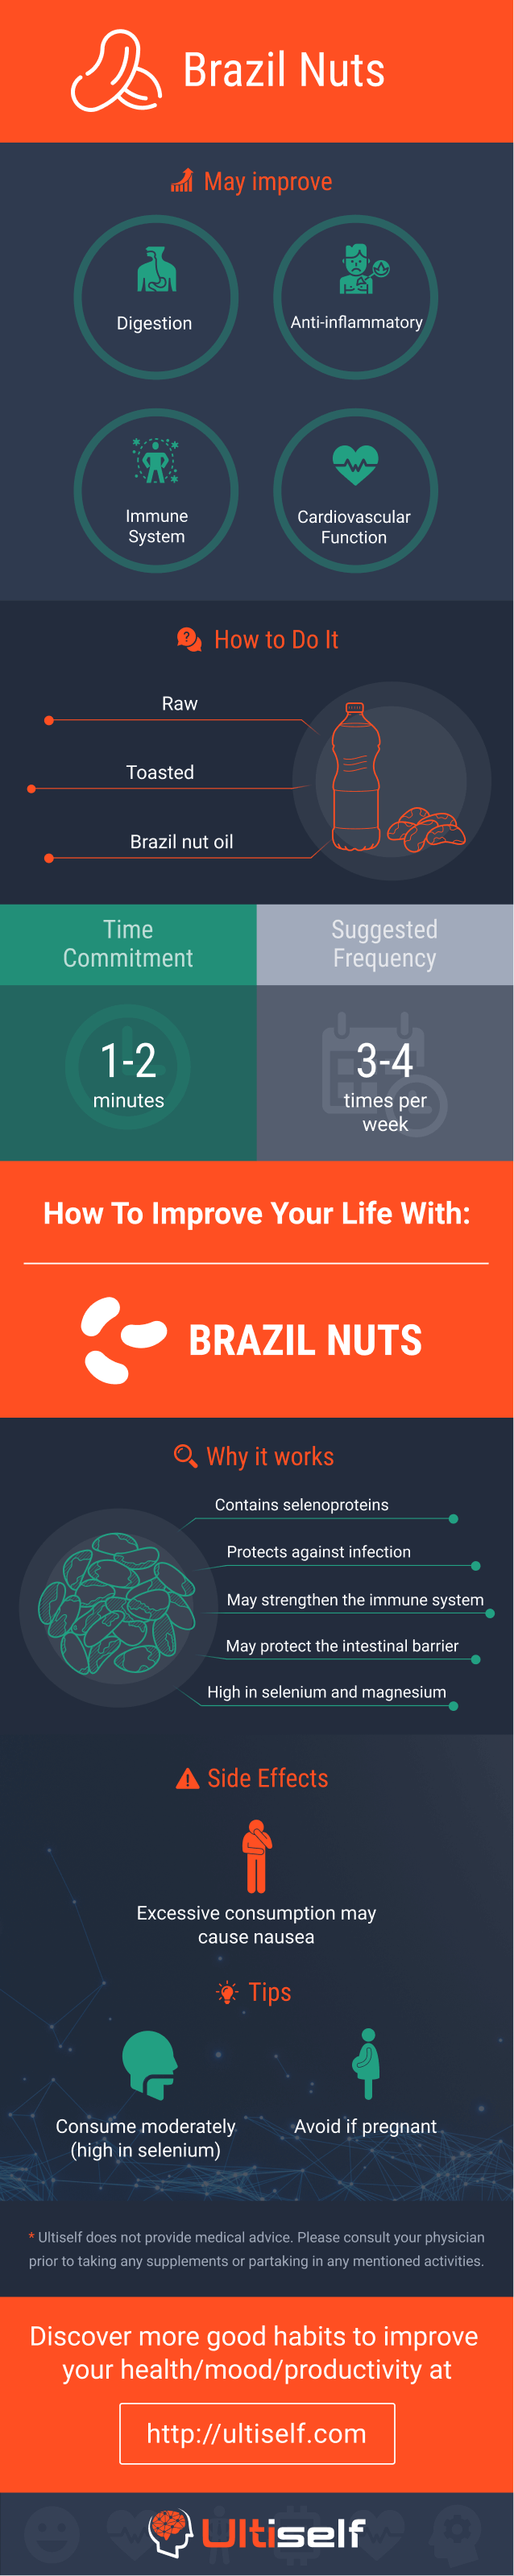 Brazil nuts infographic